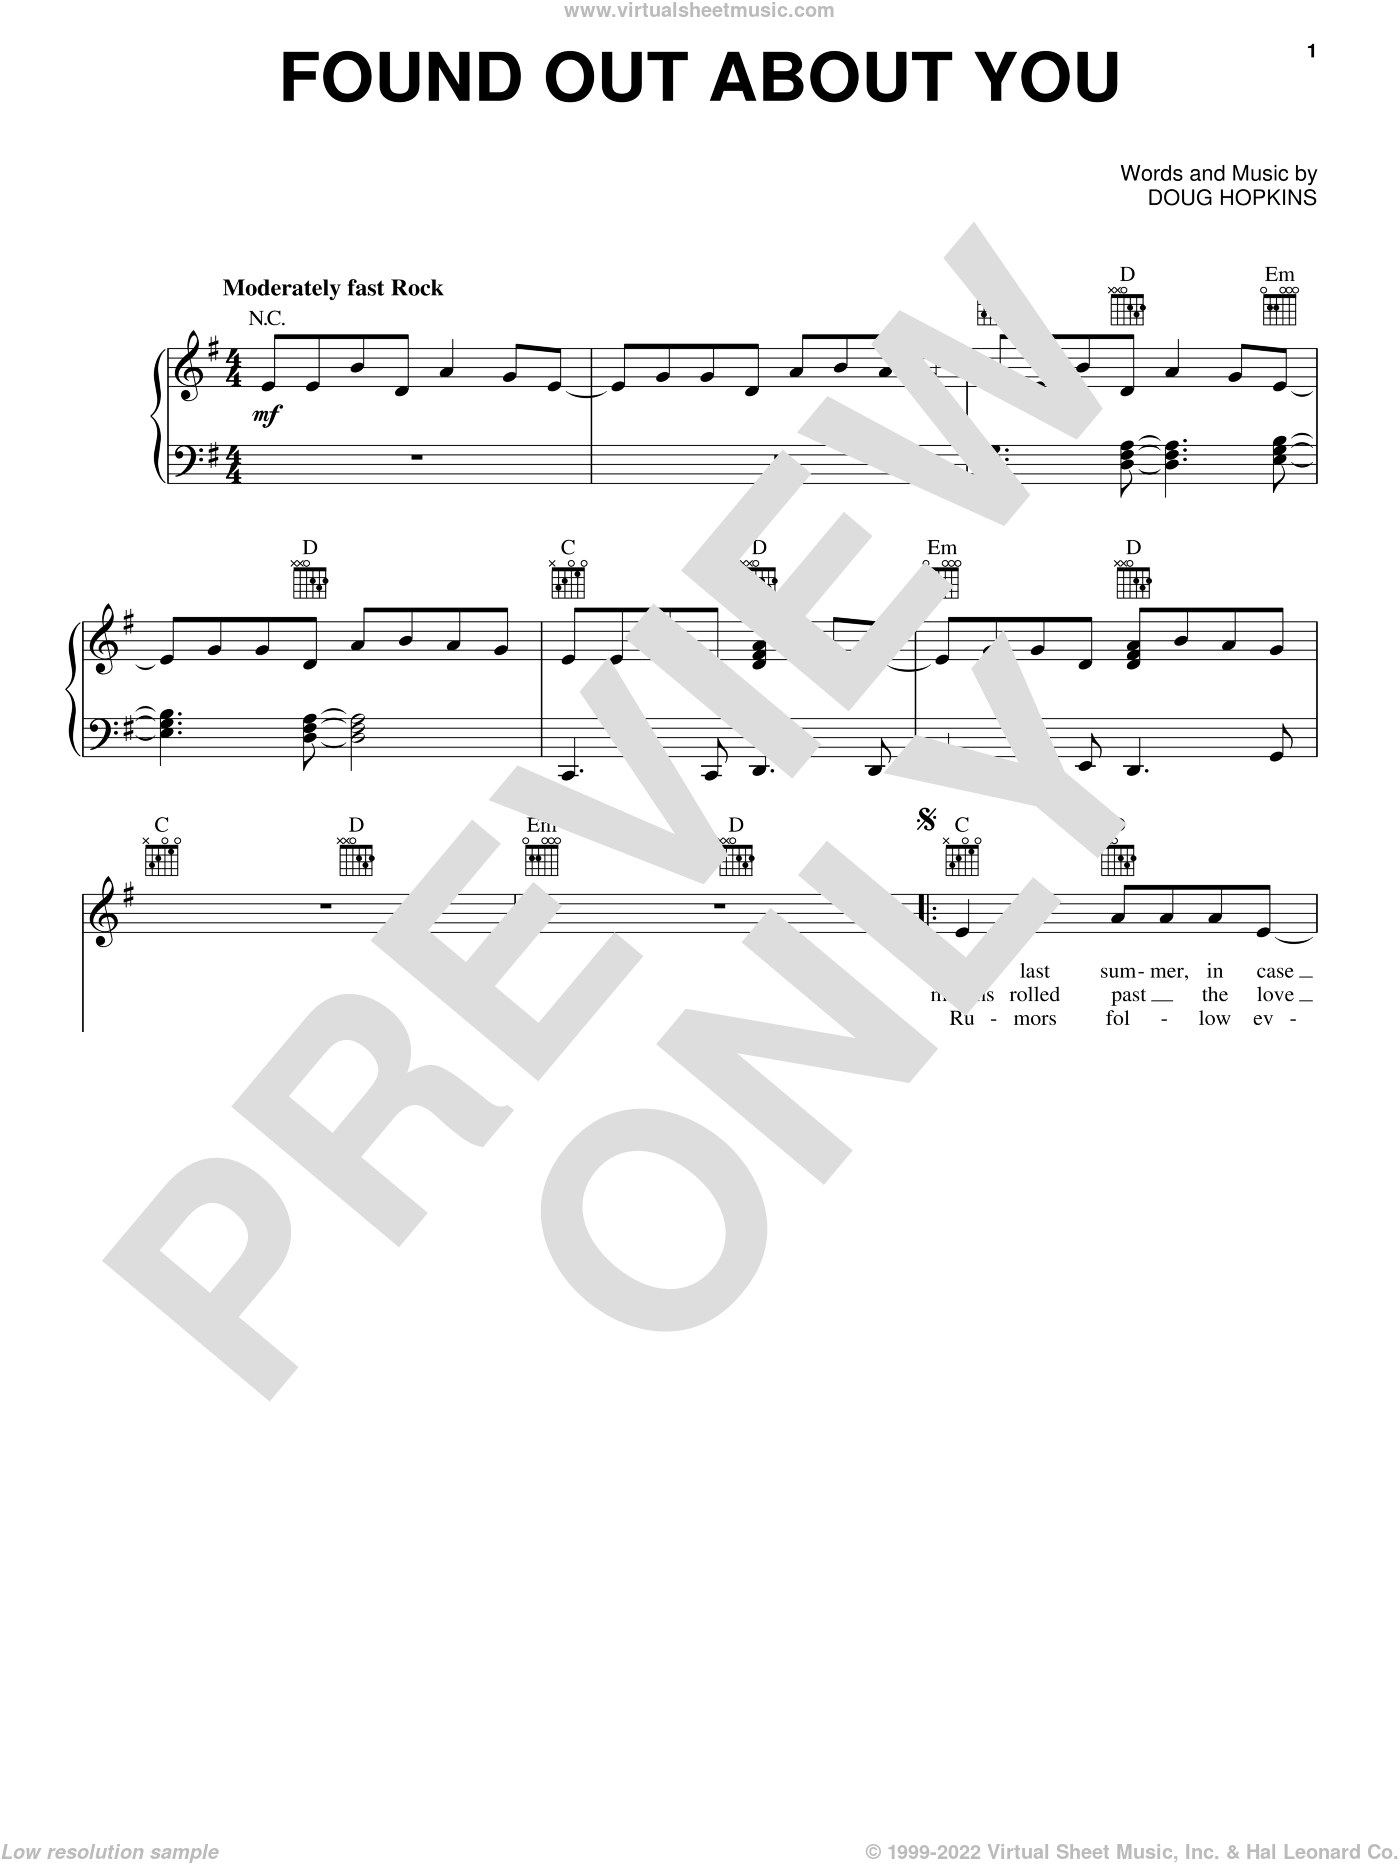 Found Out About You sheet music for voice, piano or guitar by Gin Blossoms and Doug Hopkins, intermediate skill level